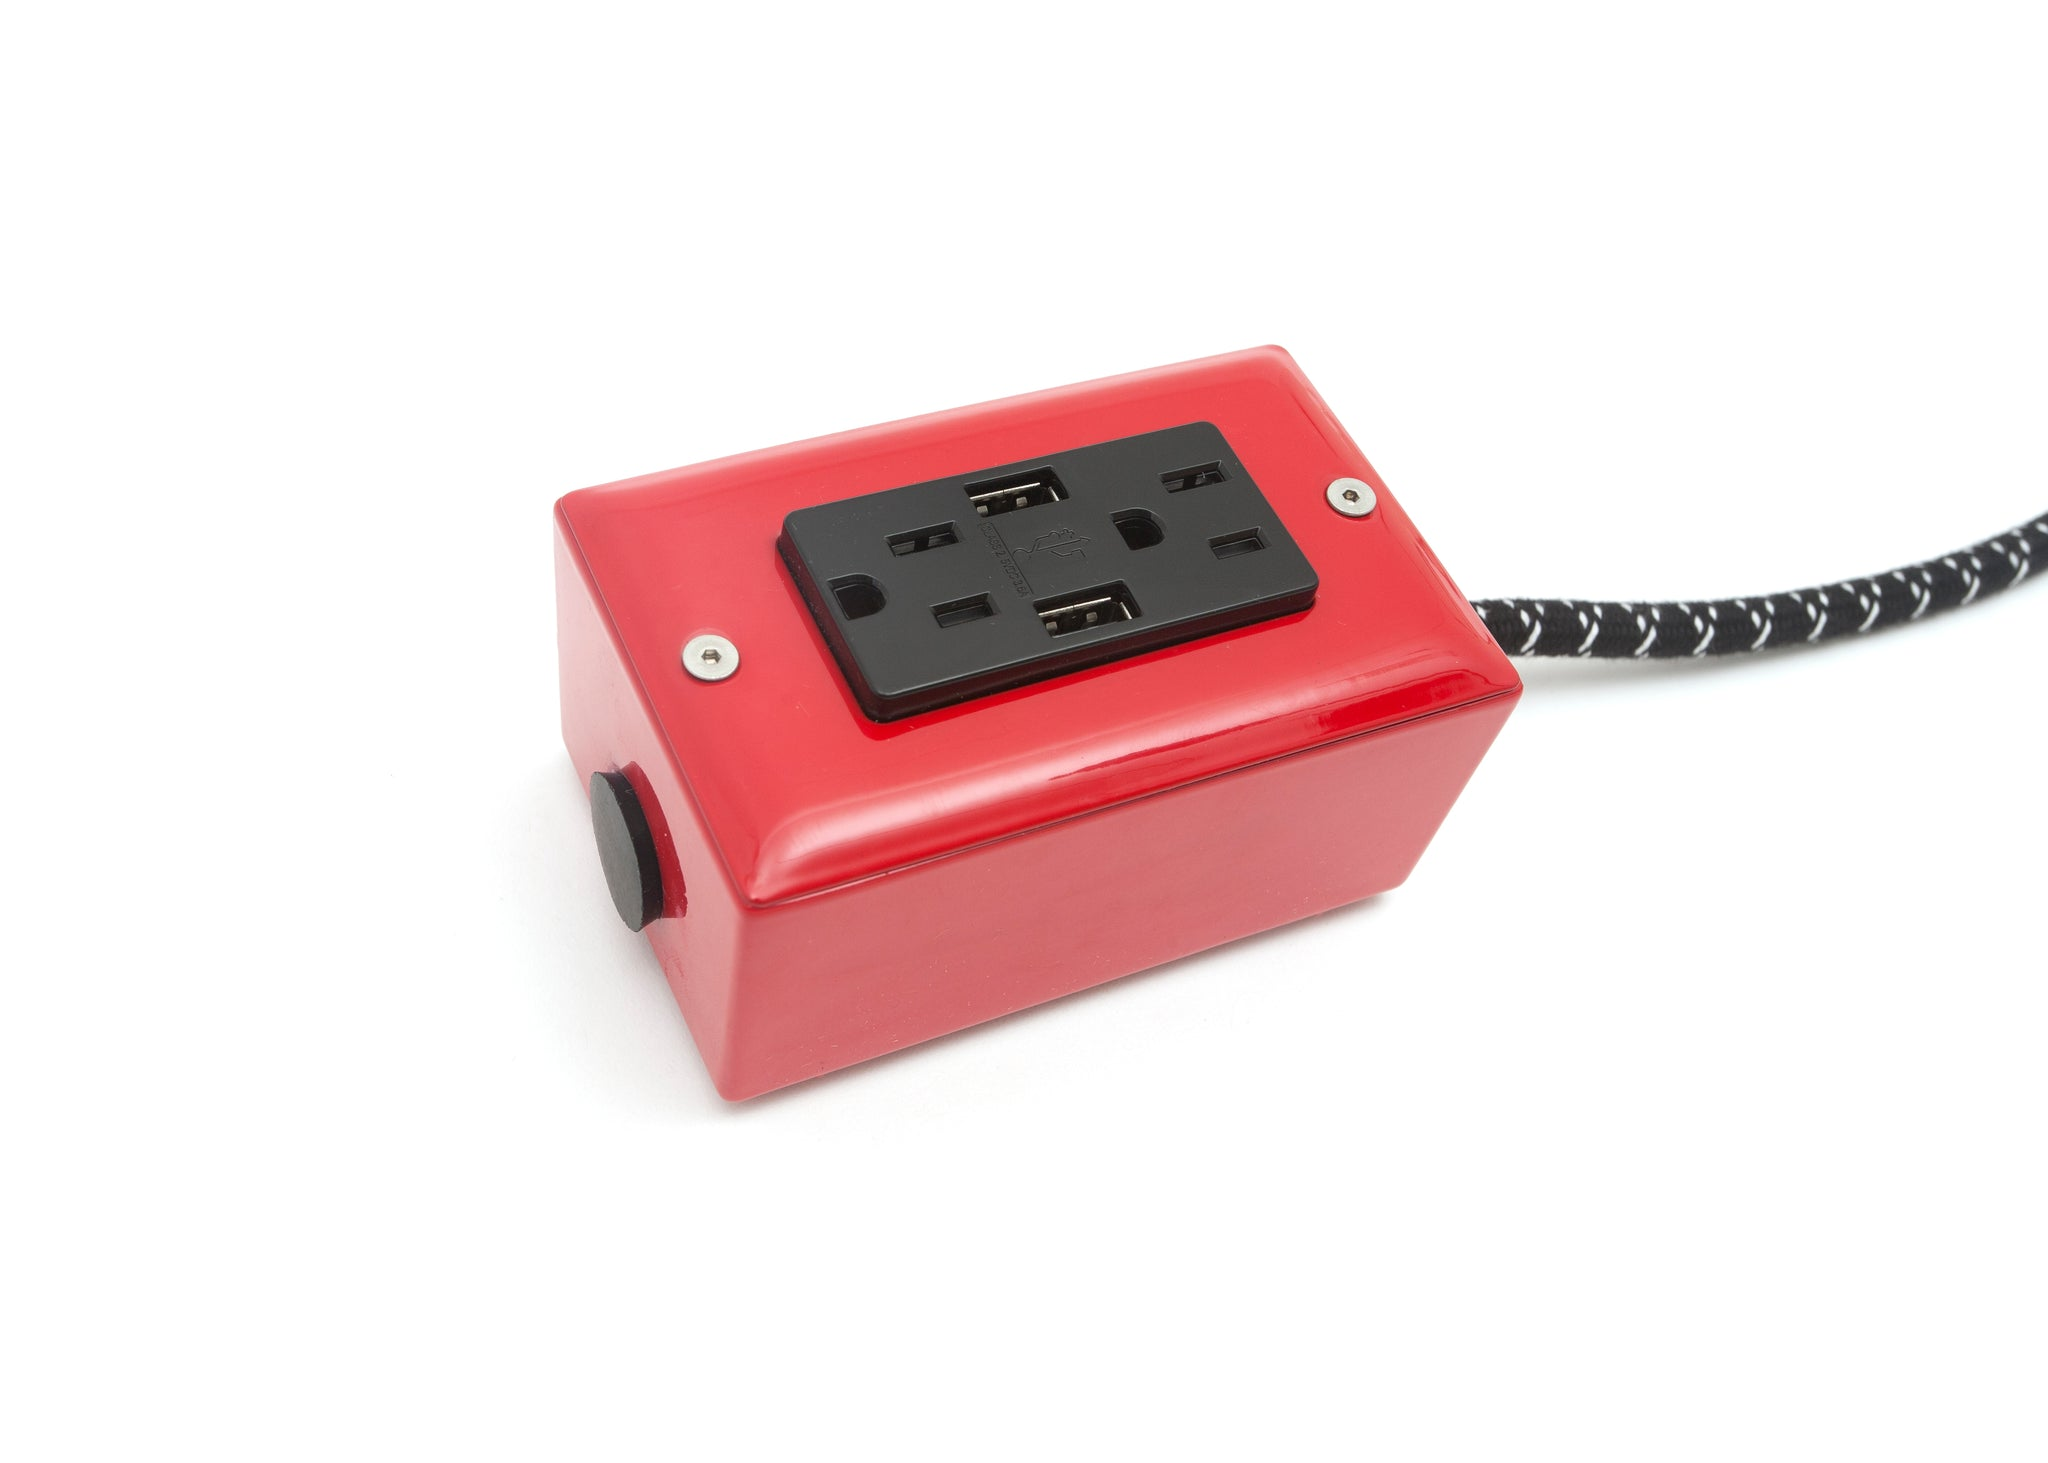 The First Smart Chip Extension Cord - 12' Extō Dual-USB, Dual-Outlet - Bottle Rocket Red